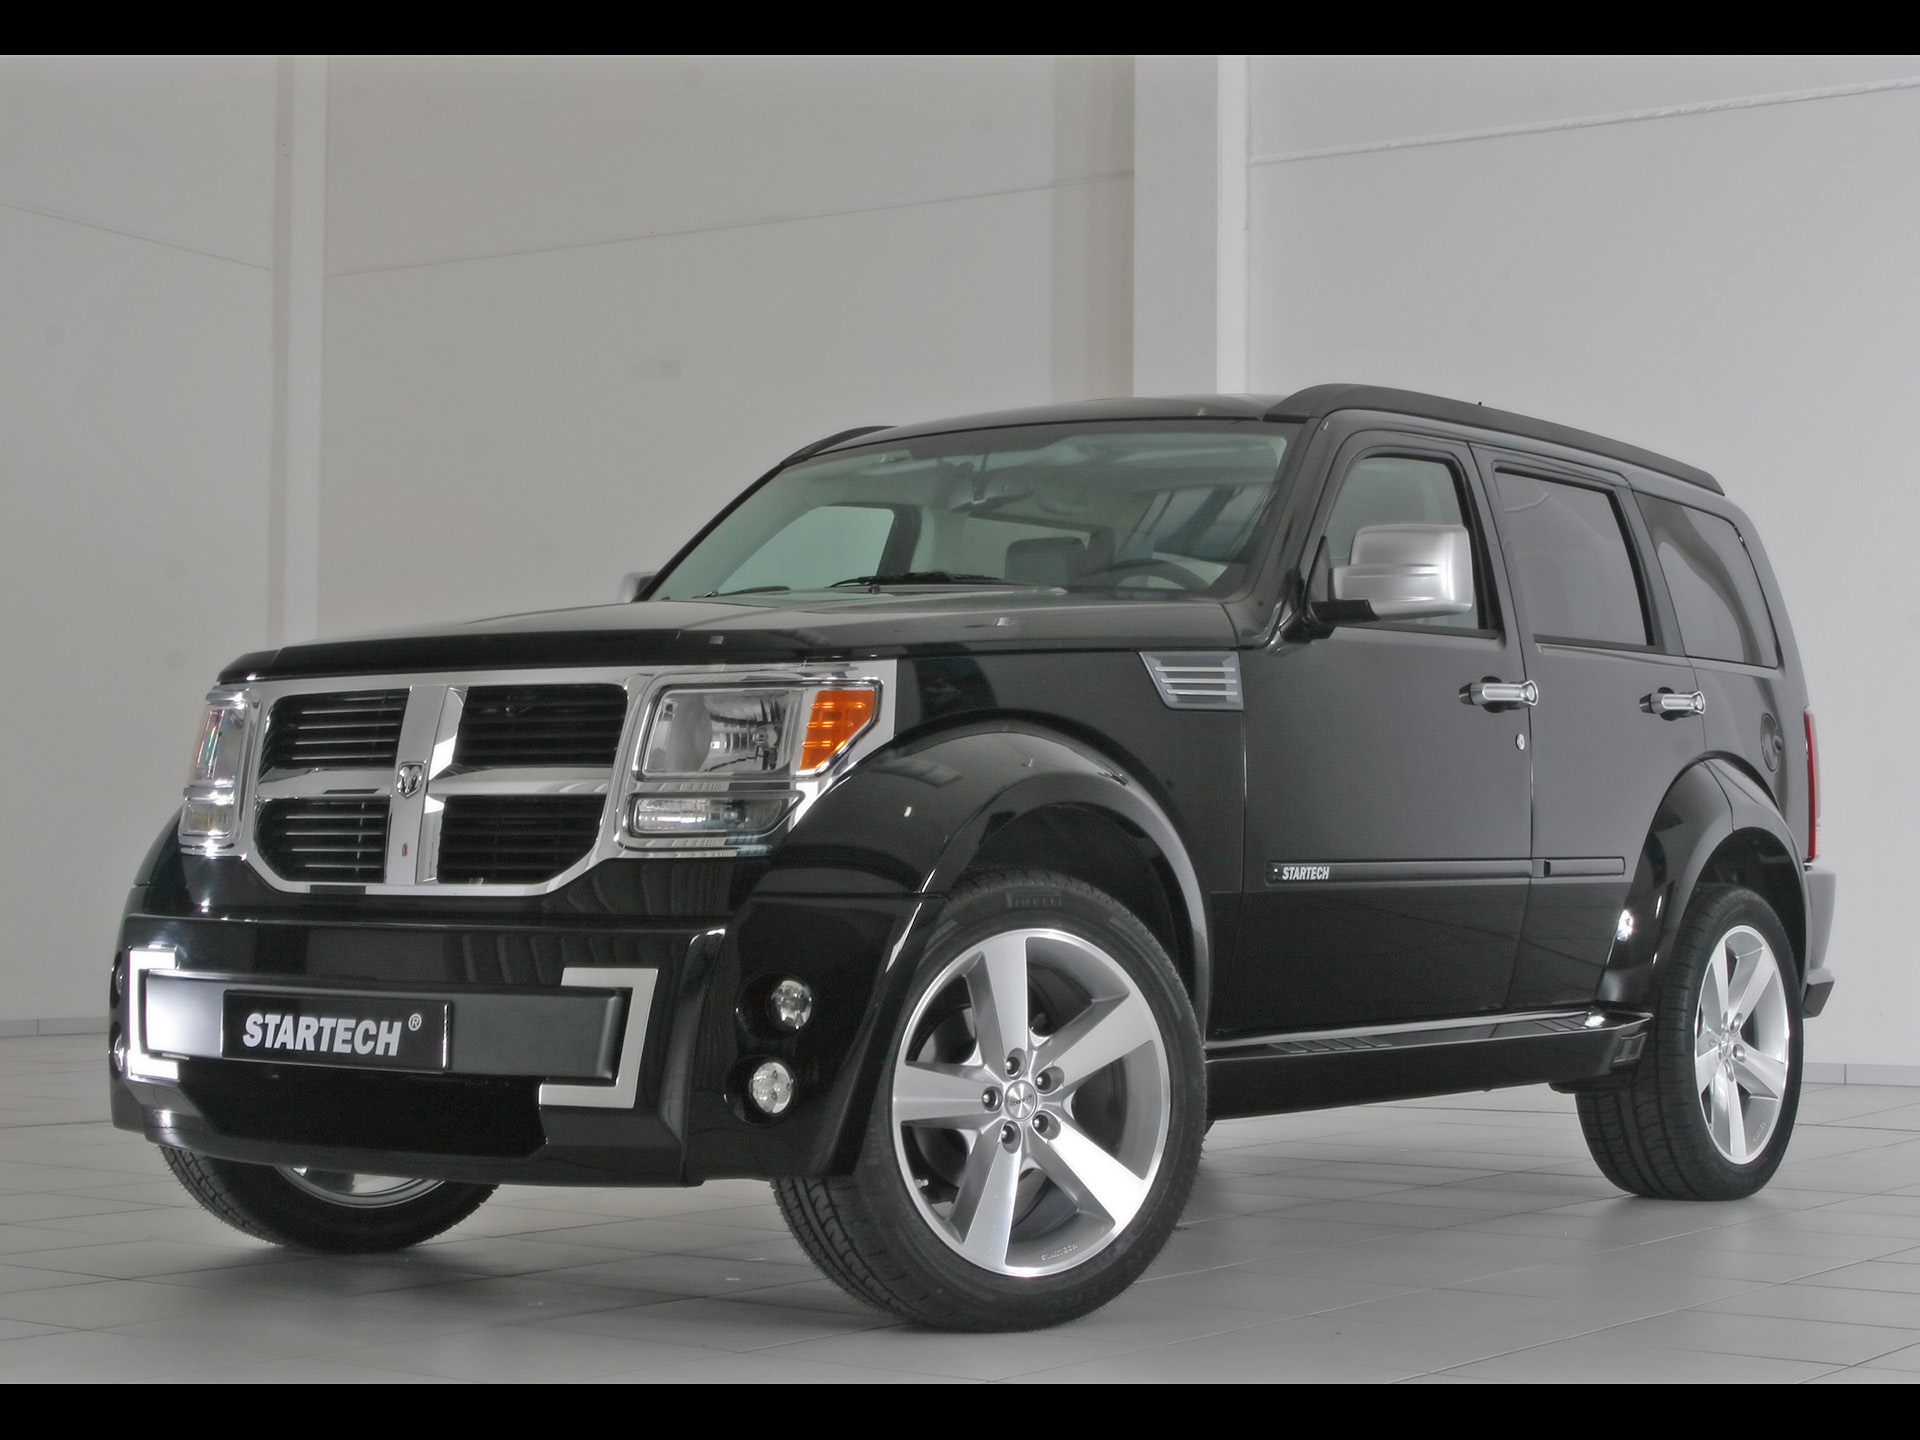 Startech dodge nitro photos photogallery with 5 pics carsbase new startech dodge nitro pictures sciox Gallery